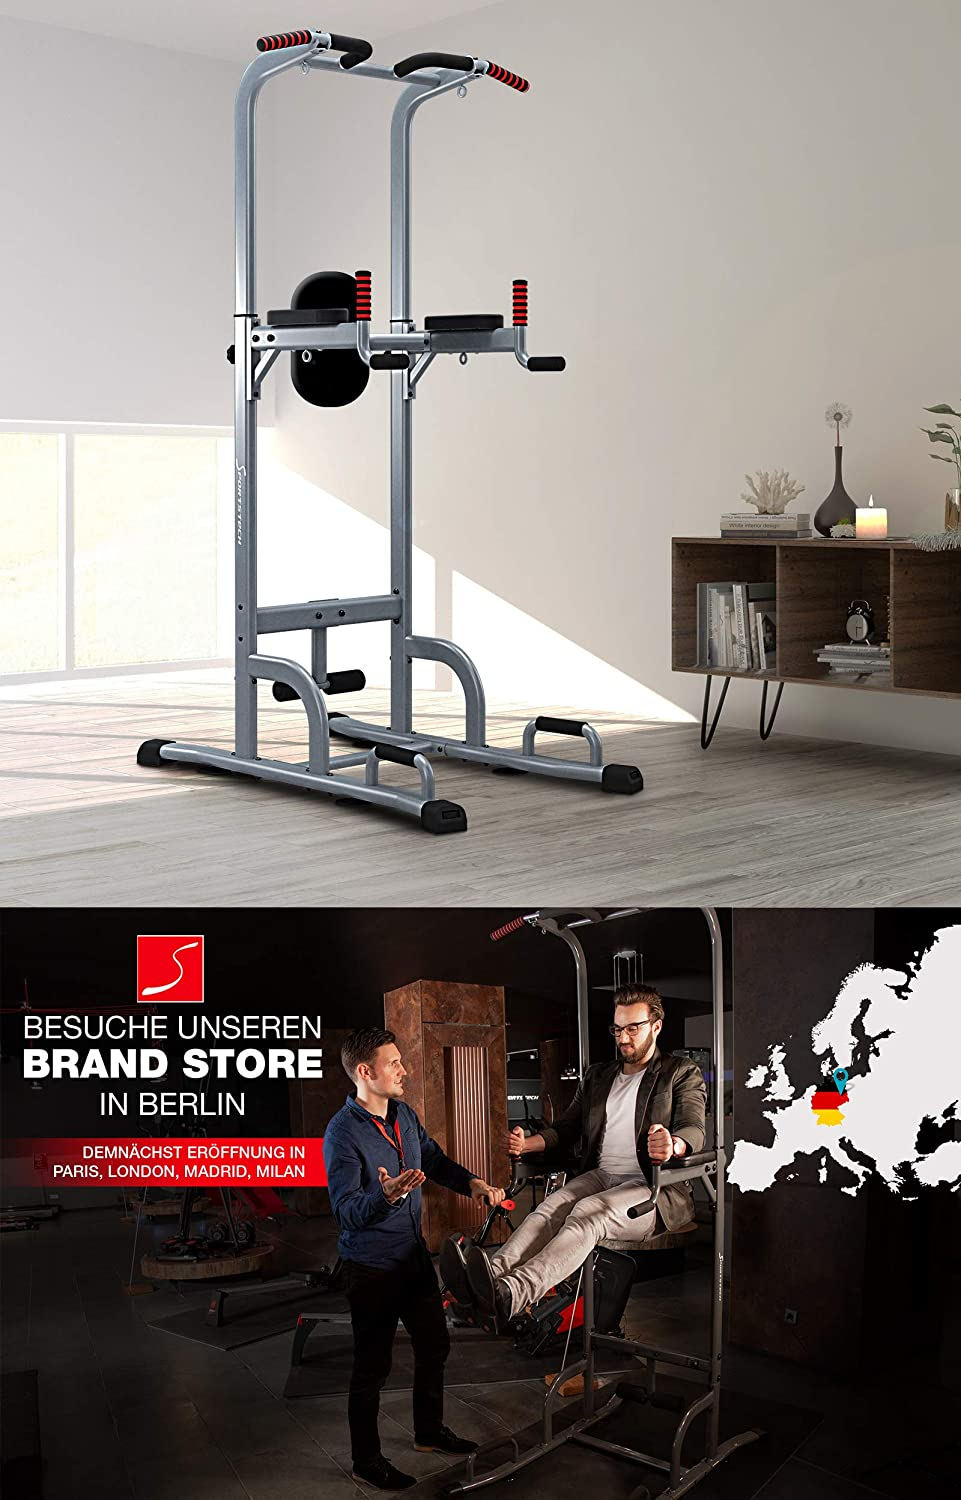 Sportstech 7 in1 Power Tower PT300 es una DIP Station, Power Tower & gymtower, Power Station multifuncional para casa con barra dominadas, piegamenti y 4 ...